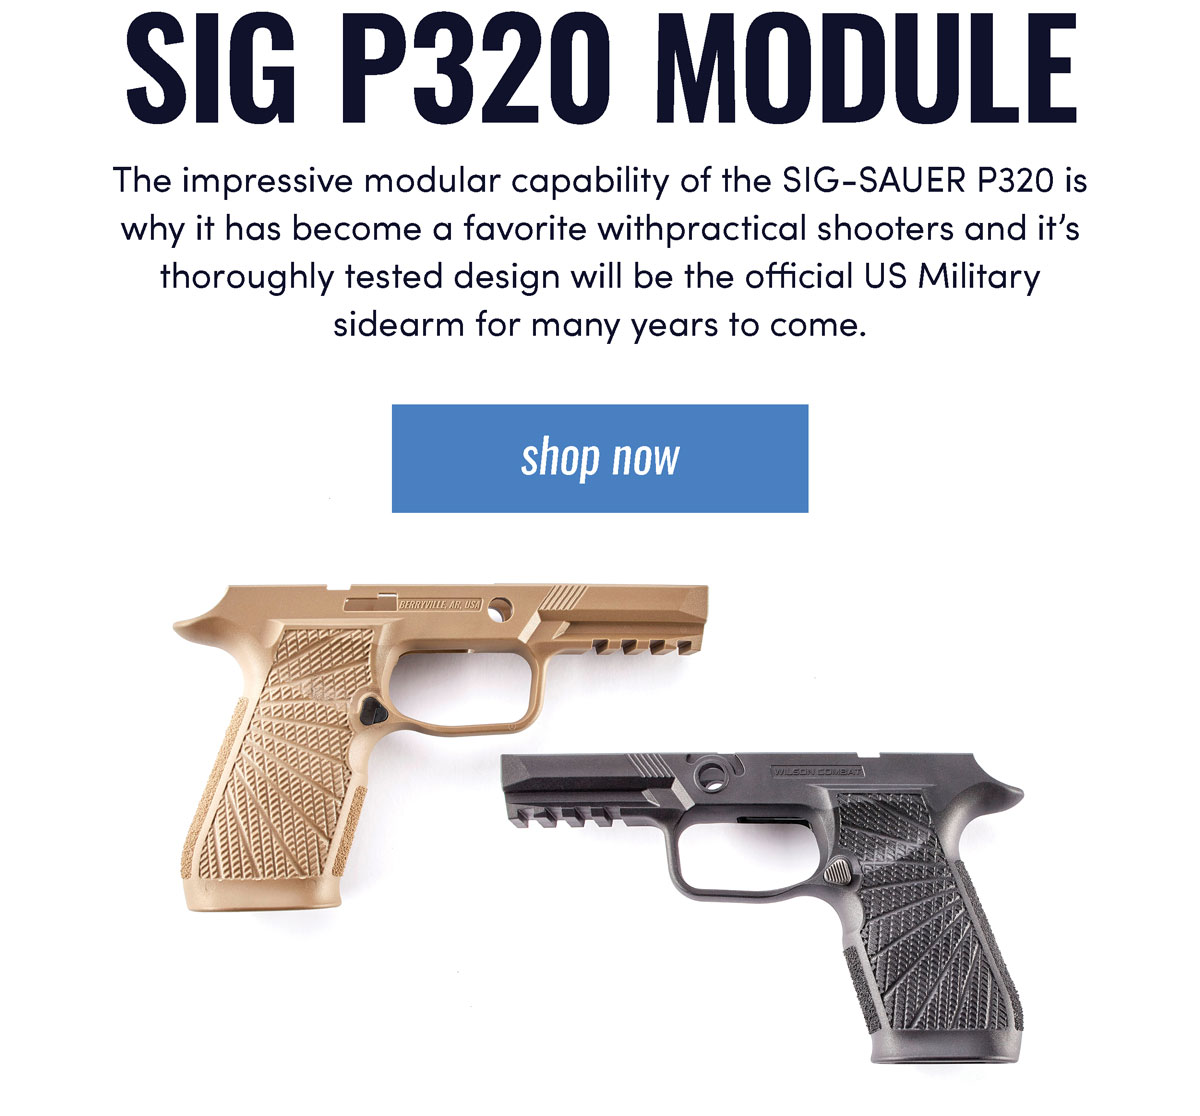 Sig P320 Module,The impressive modular capability of the SIG-SAUER P320 is why it has become a favorite withpractical shooters and it's thoroughly tested design will be the official US Military  sidearm for many years to come.